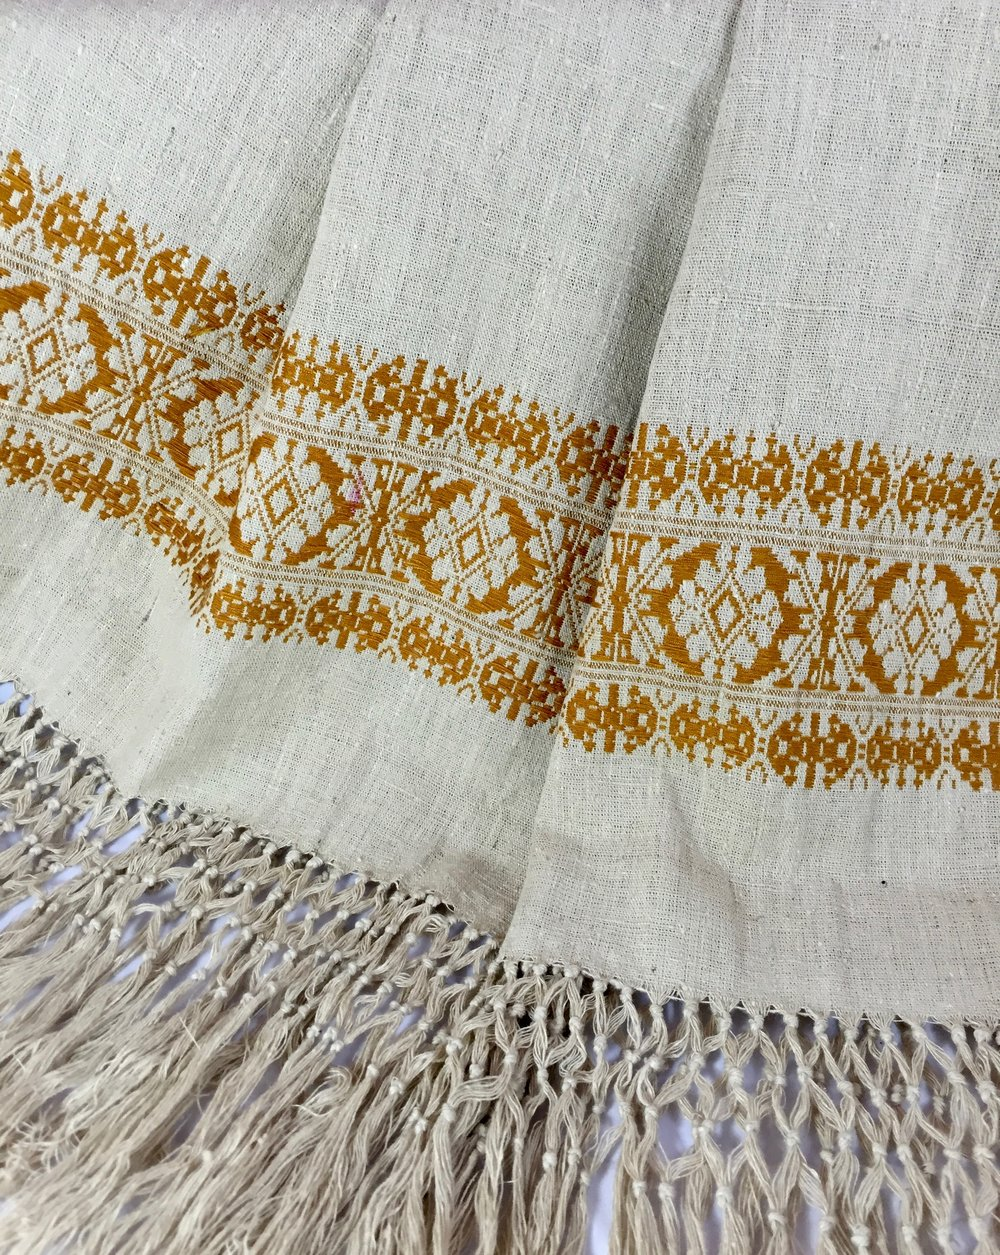 Detail of the handwoven stole that I lovingly acquired. Eri silk, from silkworms only found in Assam, India, is considered a 'peace silk'. The caterpillars live a full life cycle in the silk spinning process.